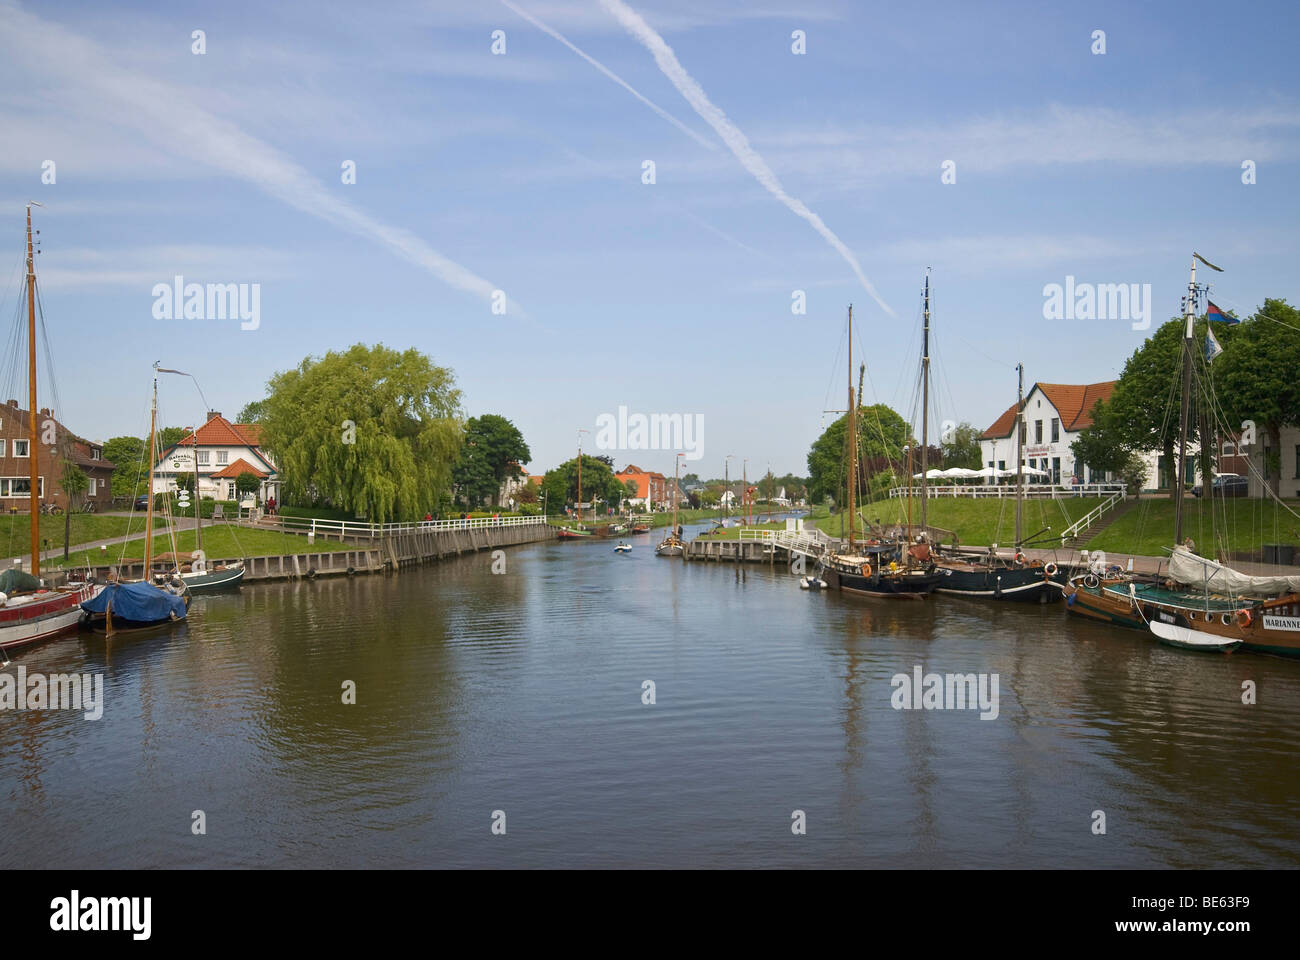 Old Port, Museum Port of Carolinensiel, historic flat-bottomed sailing ships in the port, view over the Harle River - Stock Image